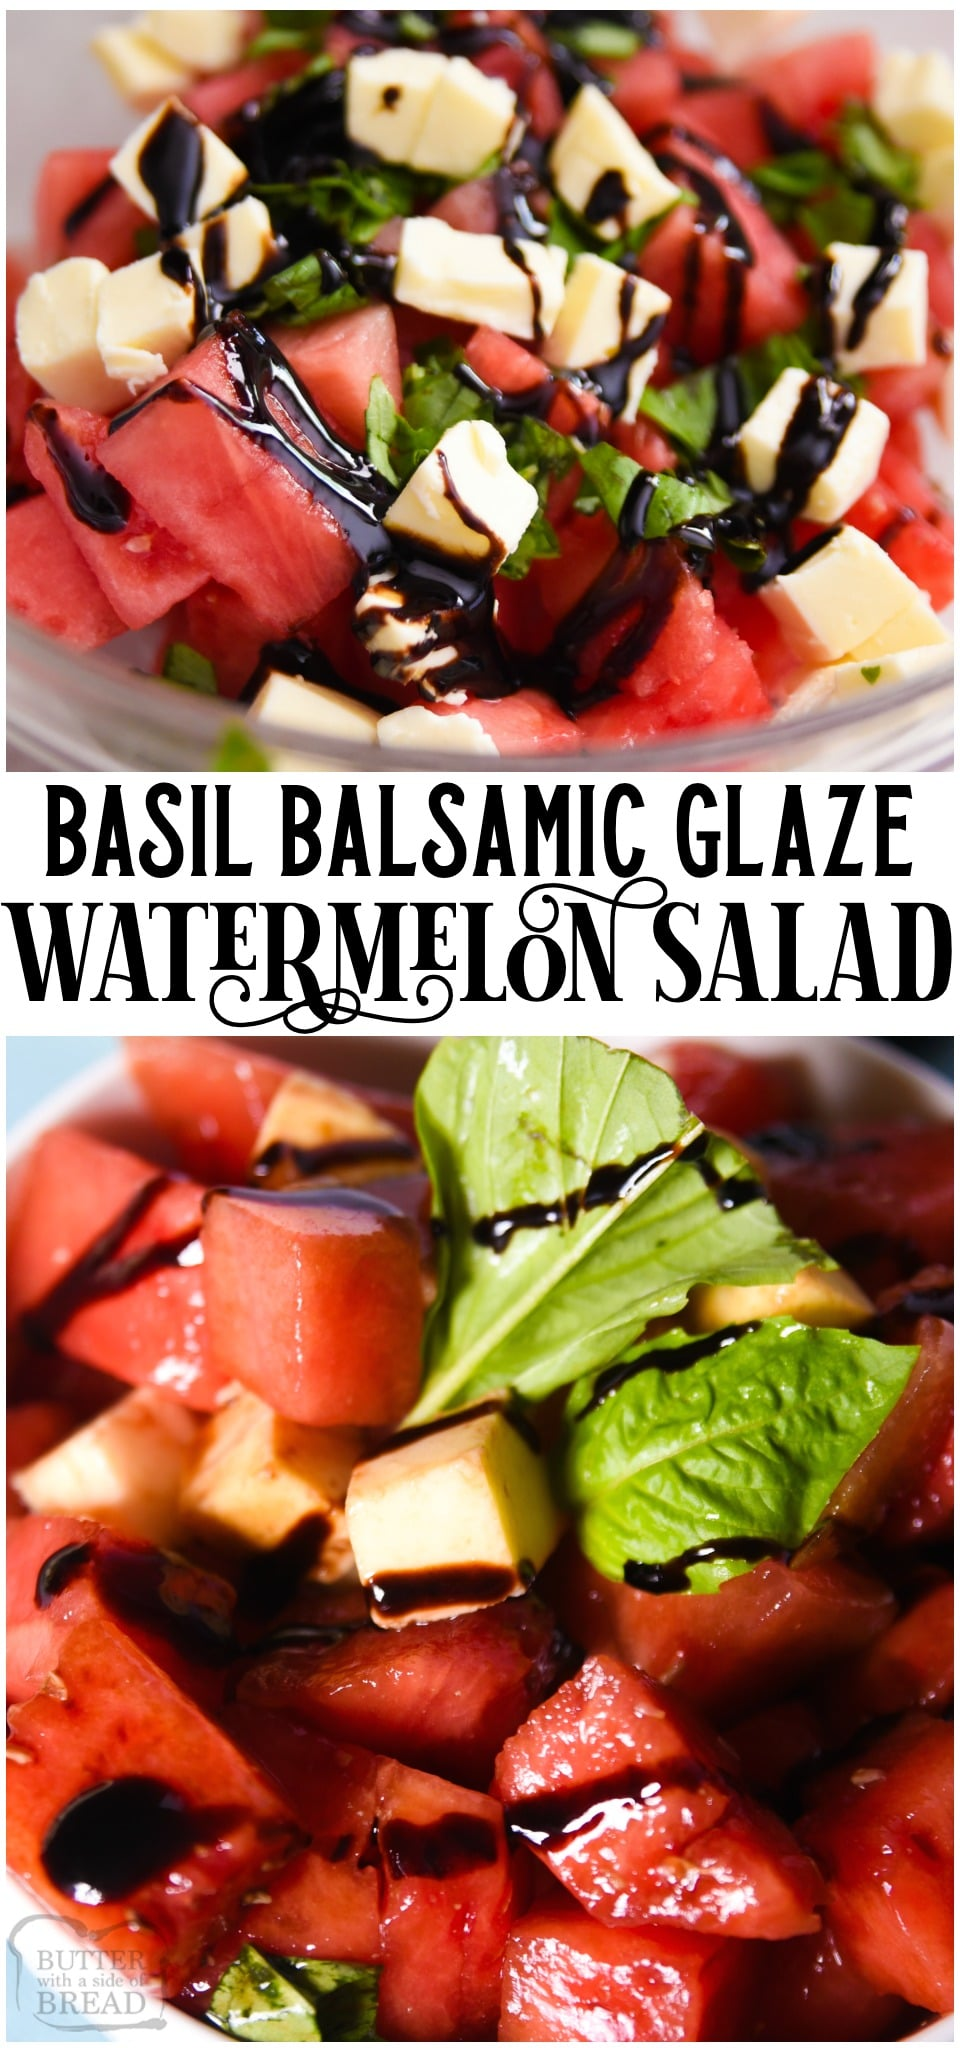 Watermelon Salad recipe with just 4 ingredients! Delightful mix of sweet and savory flavors in this watermelon salad with basil and balsamic vinegar! #watermelon #basil #balsamic #recipe #salad #easyrecipe from BUTTER WITH A SIDE OF BREAD